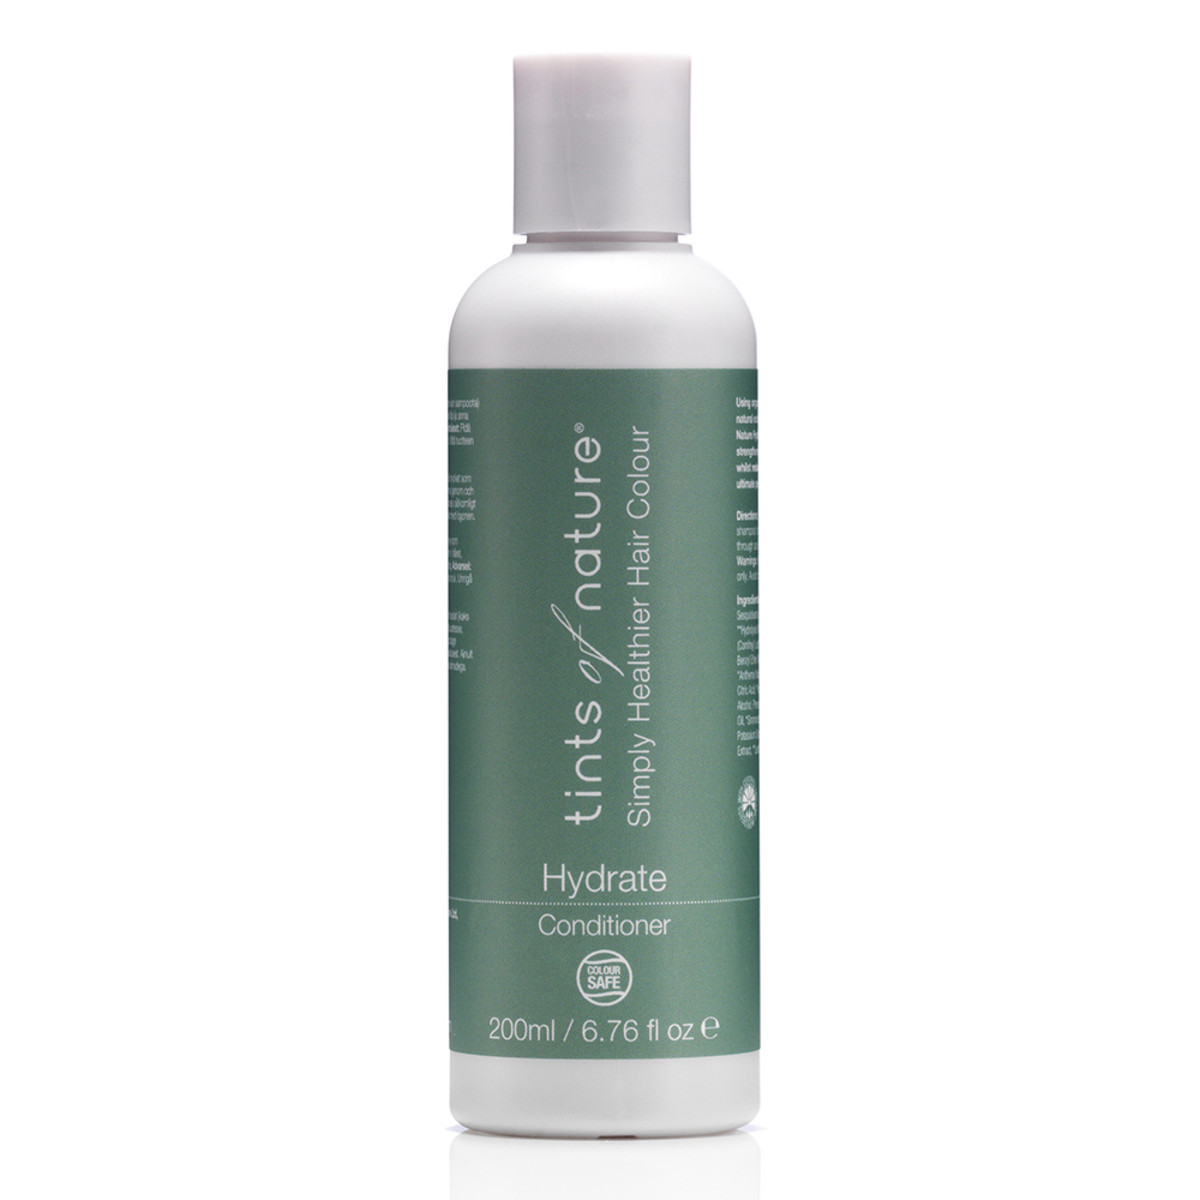 [MPLUS] Tints Of Nature Hydrate Conditioner 200Ml